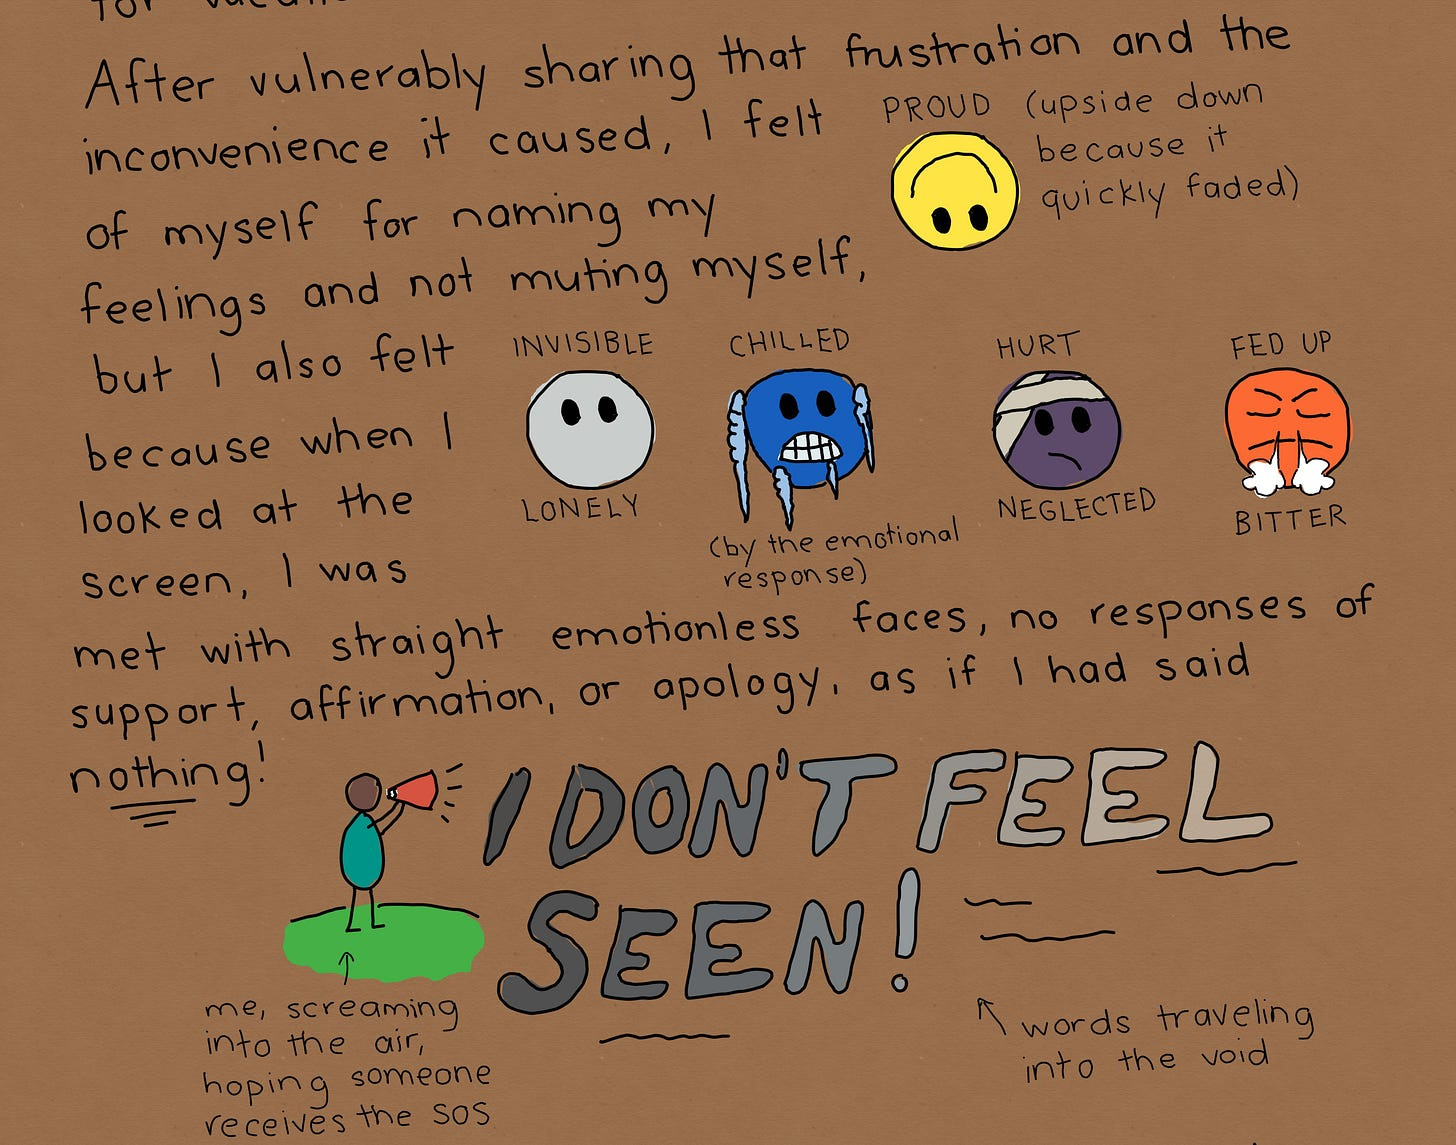 """This is a digital drawing. The text reads, """"After vulnerably sharing that frustation and the inconvenience if caused, I felt proud (picture of an upside down smiling emoji) of myself for naming my feelings and not muting myself, but I also felt invisible, lonely, chilled by the emotional response, hurt, neglected, fed up, and bitter (there are pictures of emojis depicting these clusters of emotions) because when I looked at the screen, I was met with straight emotionless faces, no responses of support, affirmation, or apology, as if I had said nothing!"""" Below this text is a picture of a person standing on a piece of land yelling into a megaphone. Bubble letters float in the sky and read, """"I DON'T FEEL SEEN!"""" in all caps."""